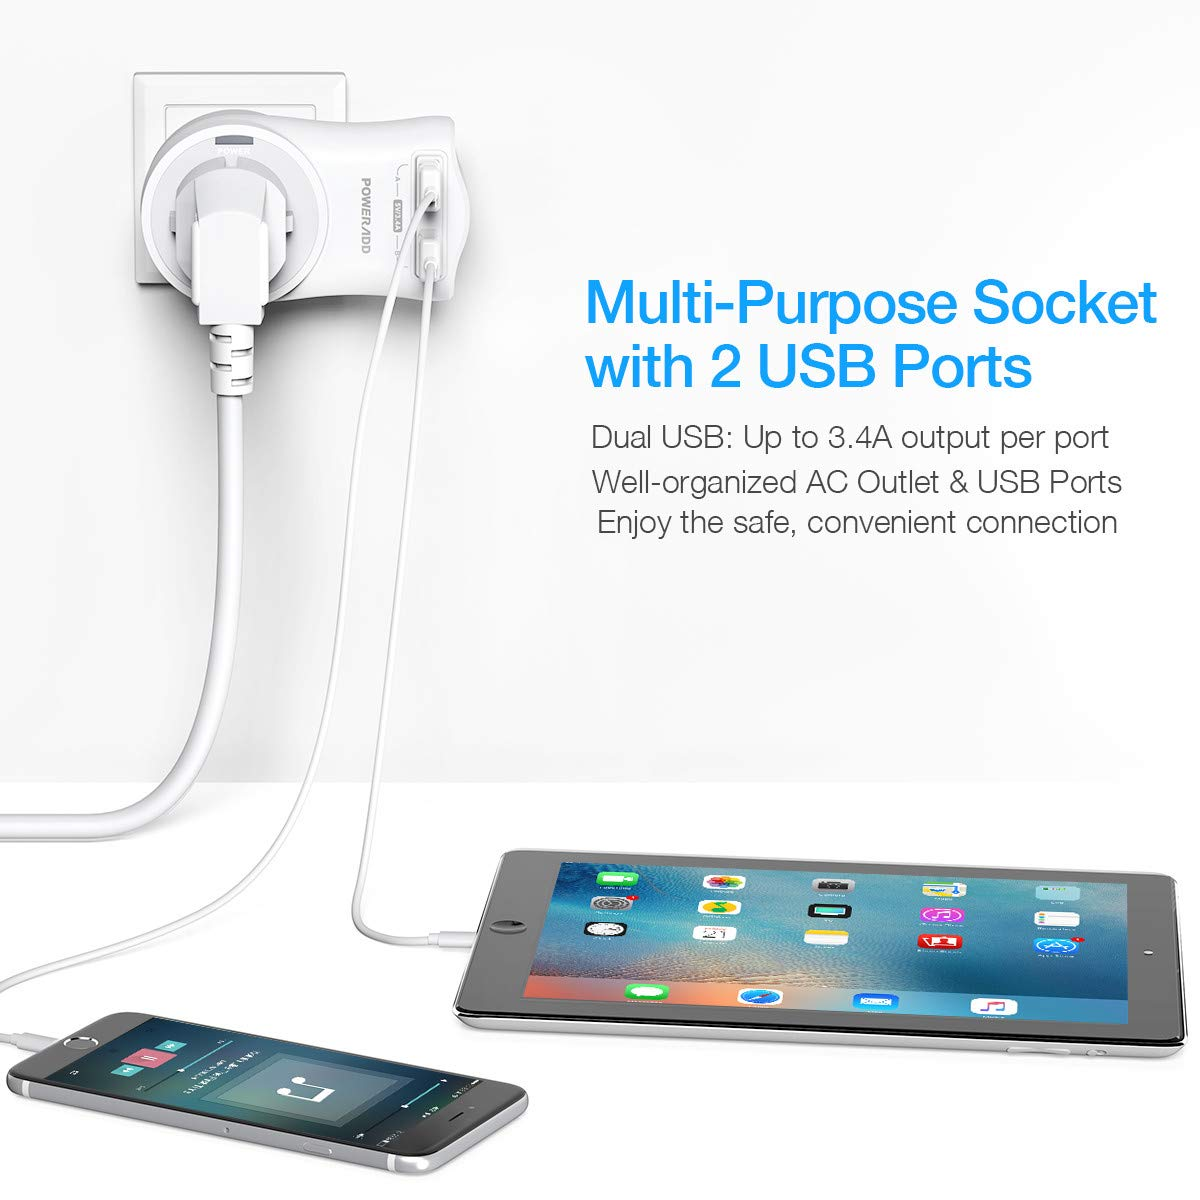 Wall Charger Poweradd Usb 360 Degree Rotatable Socket Multiple Electrical Receptacles On The Same Circuit Are Connected In With Dual Port34a Max Output Mains Plug Power Adaptors Surge